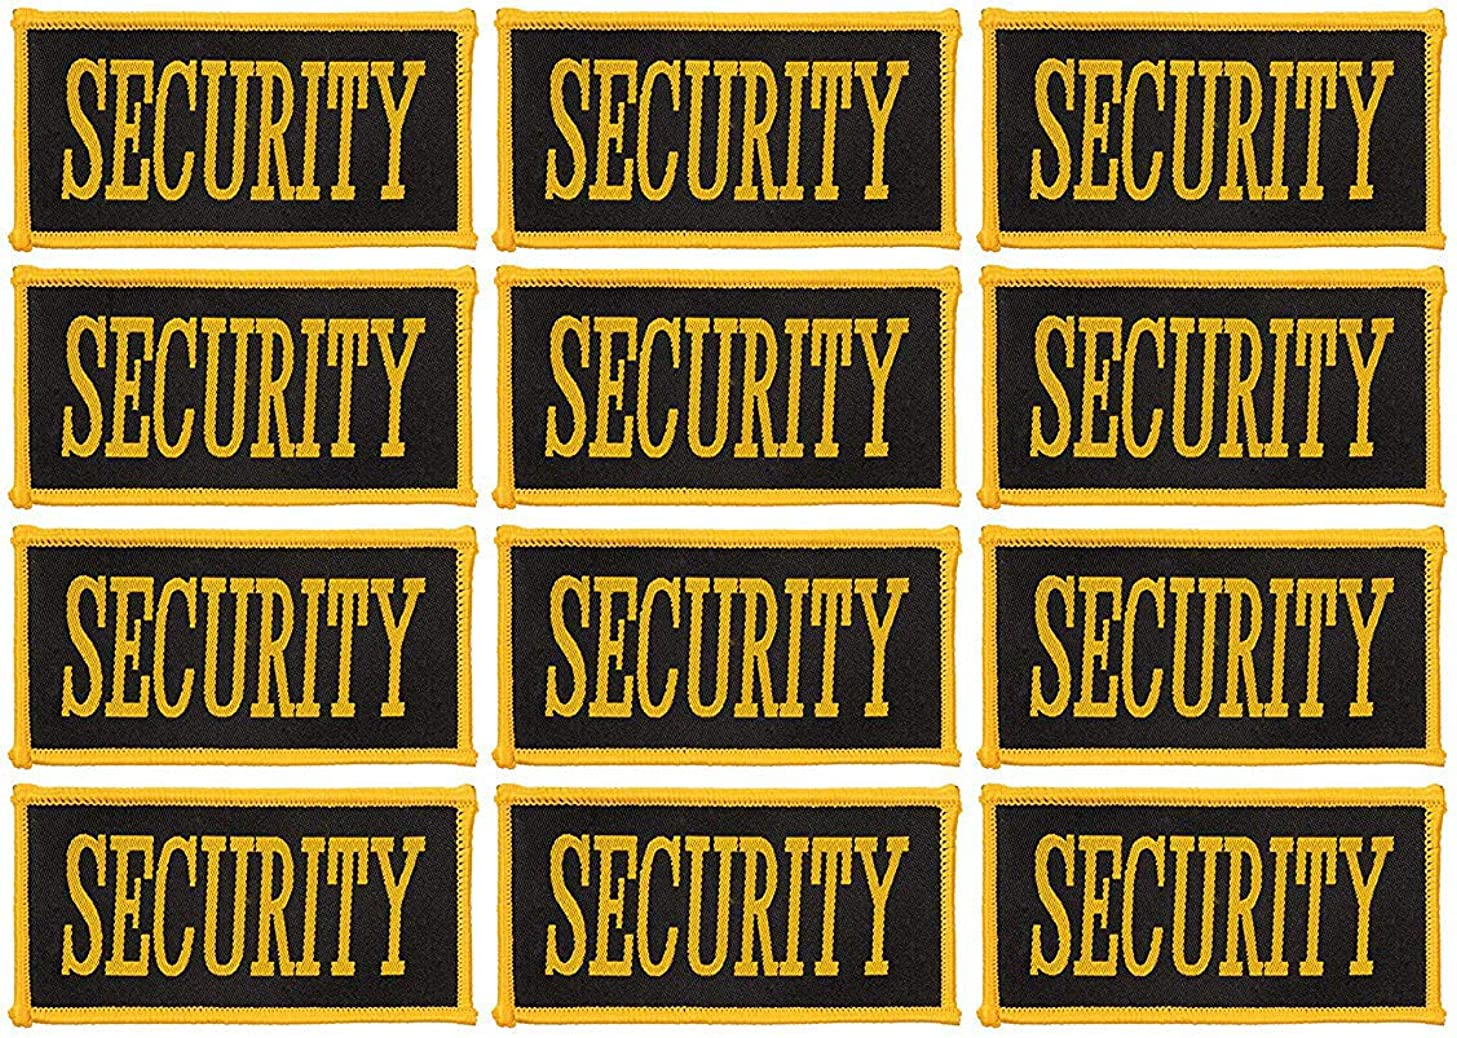 Security Patch - 12-Count Iron On Security Guard Patches, Security Officer Patch Applique with Yellow Lettering on Black Background, 3-5/8 x 1-7/8 Inches